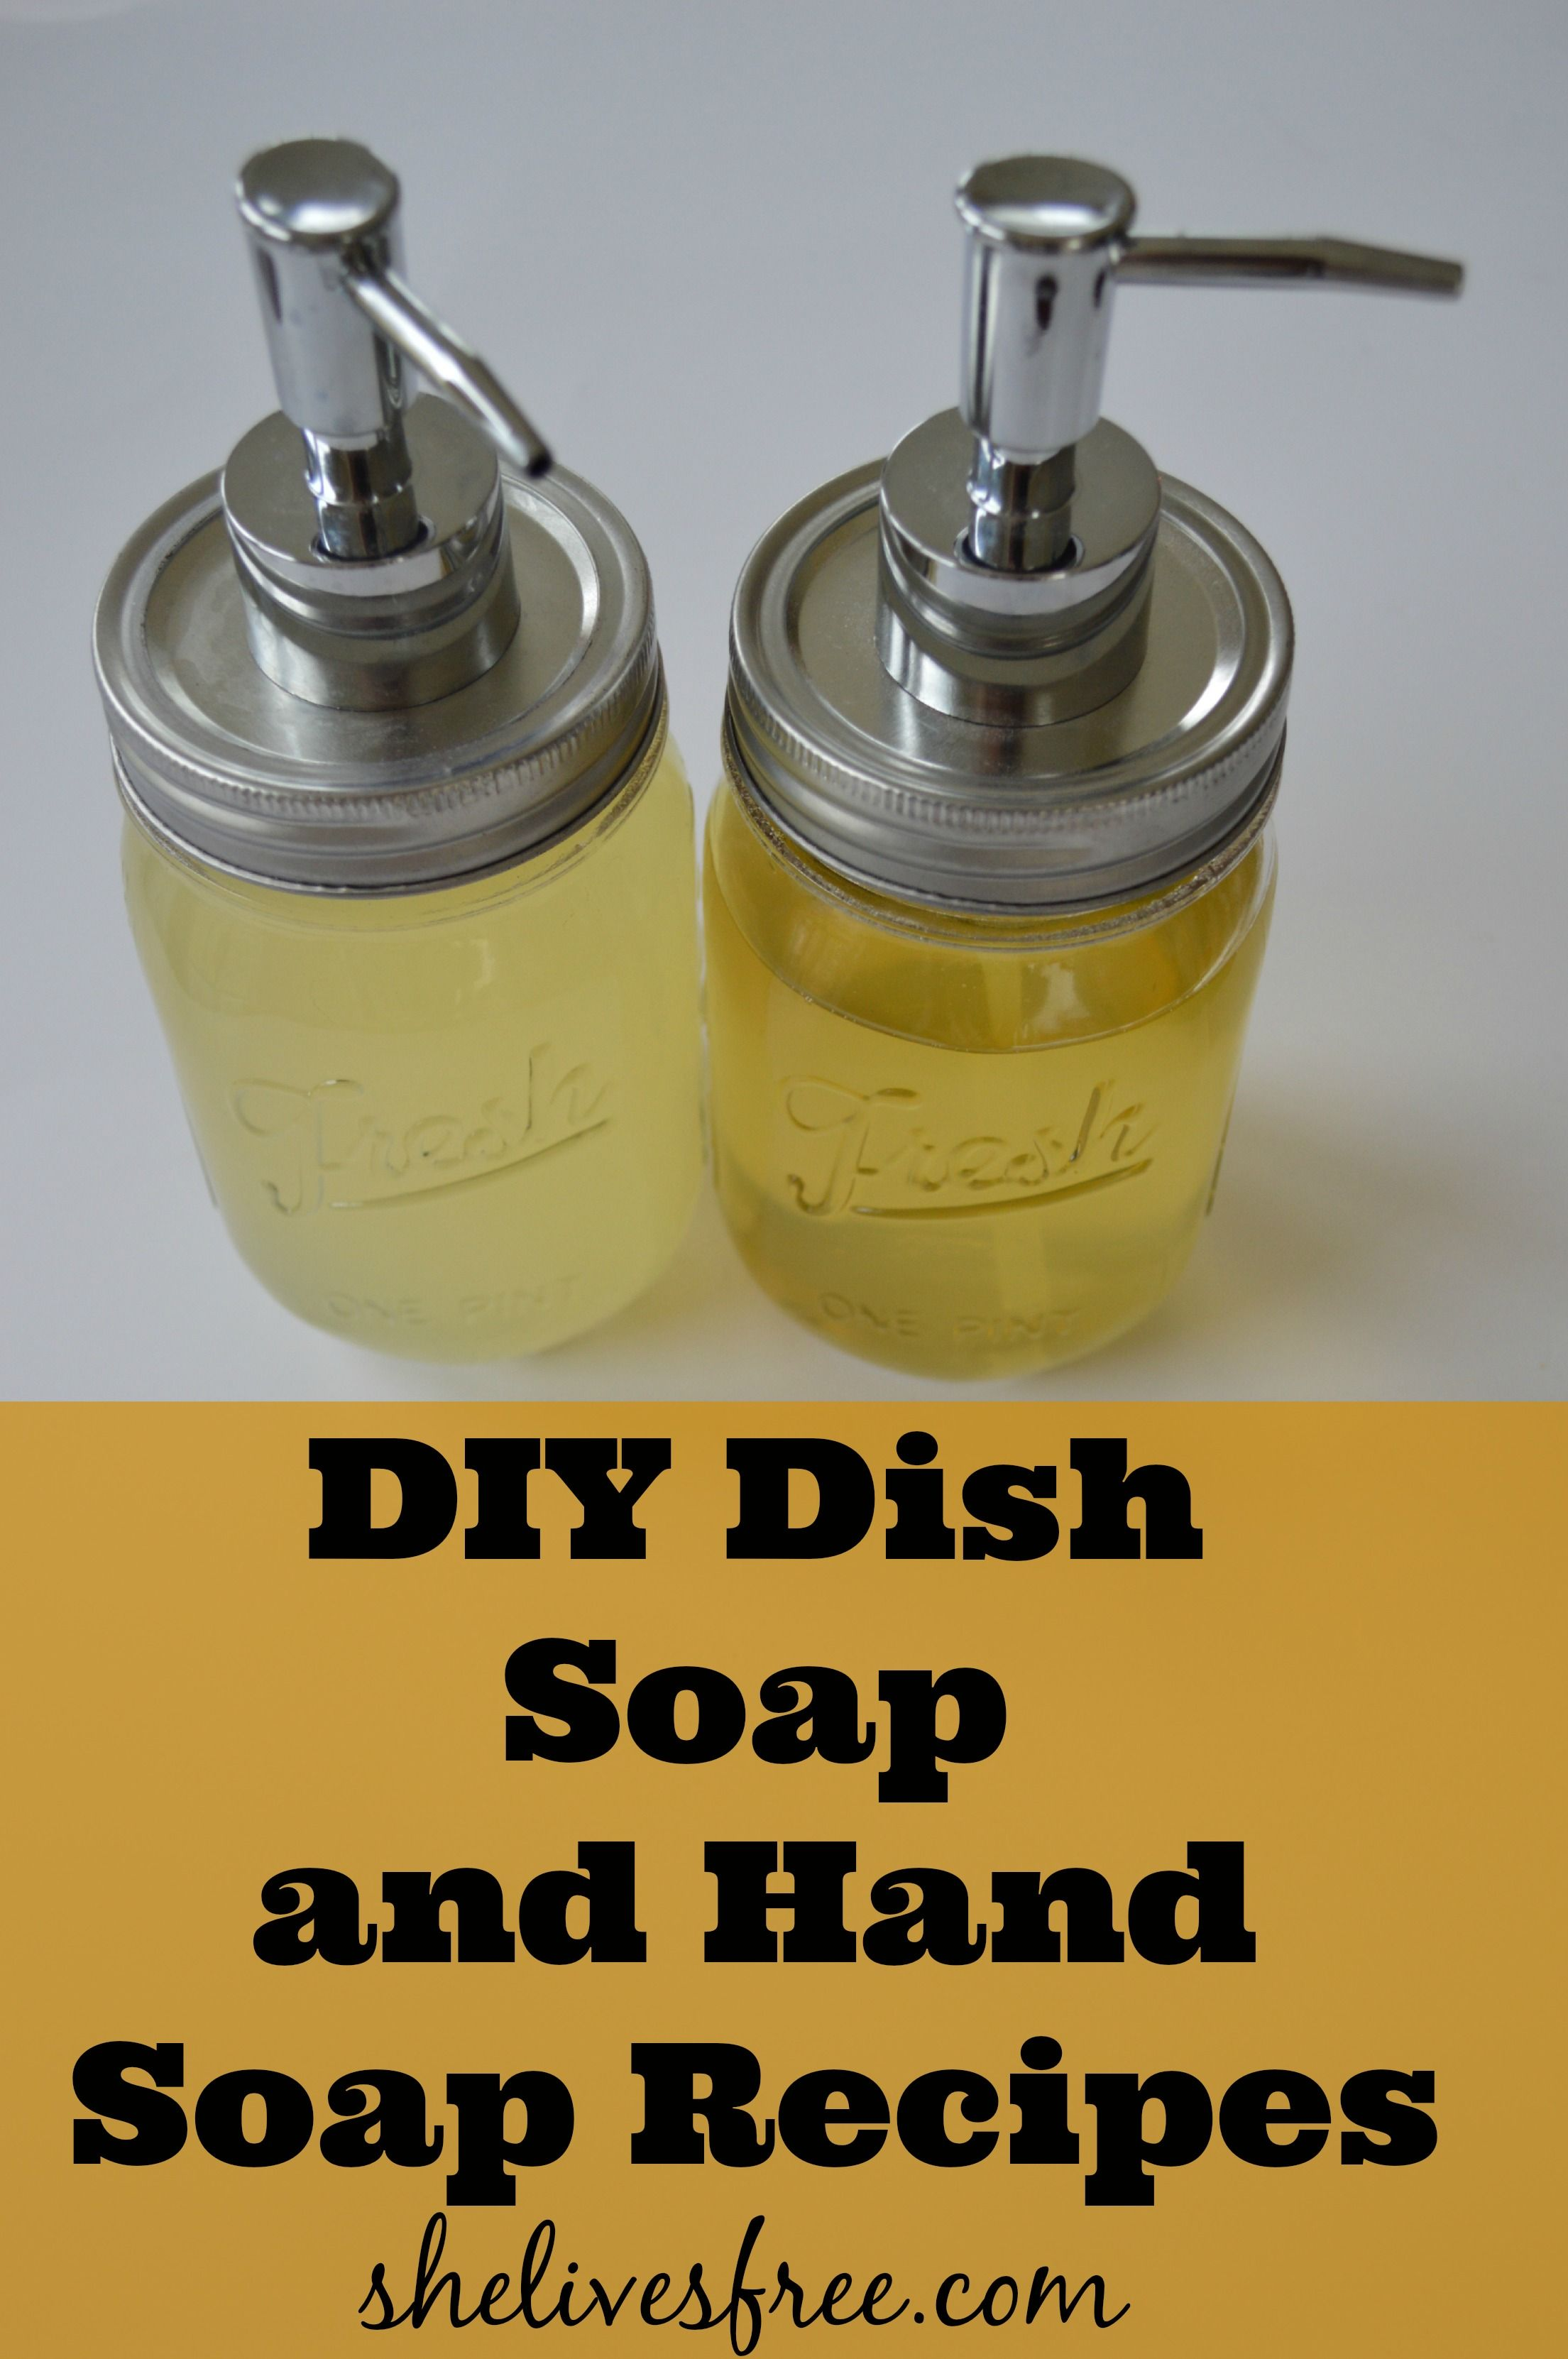 How to make your own dish soap AND hand soap with only 3